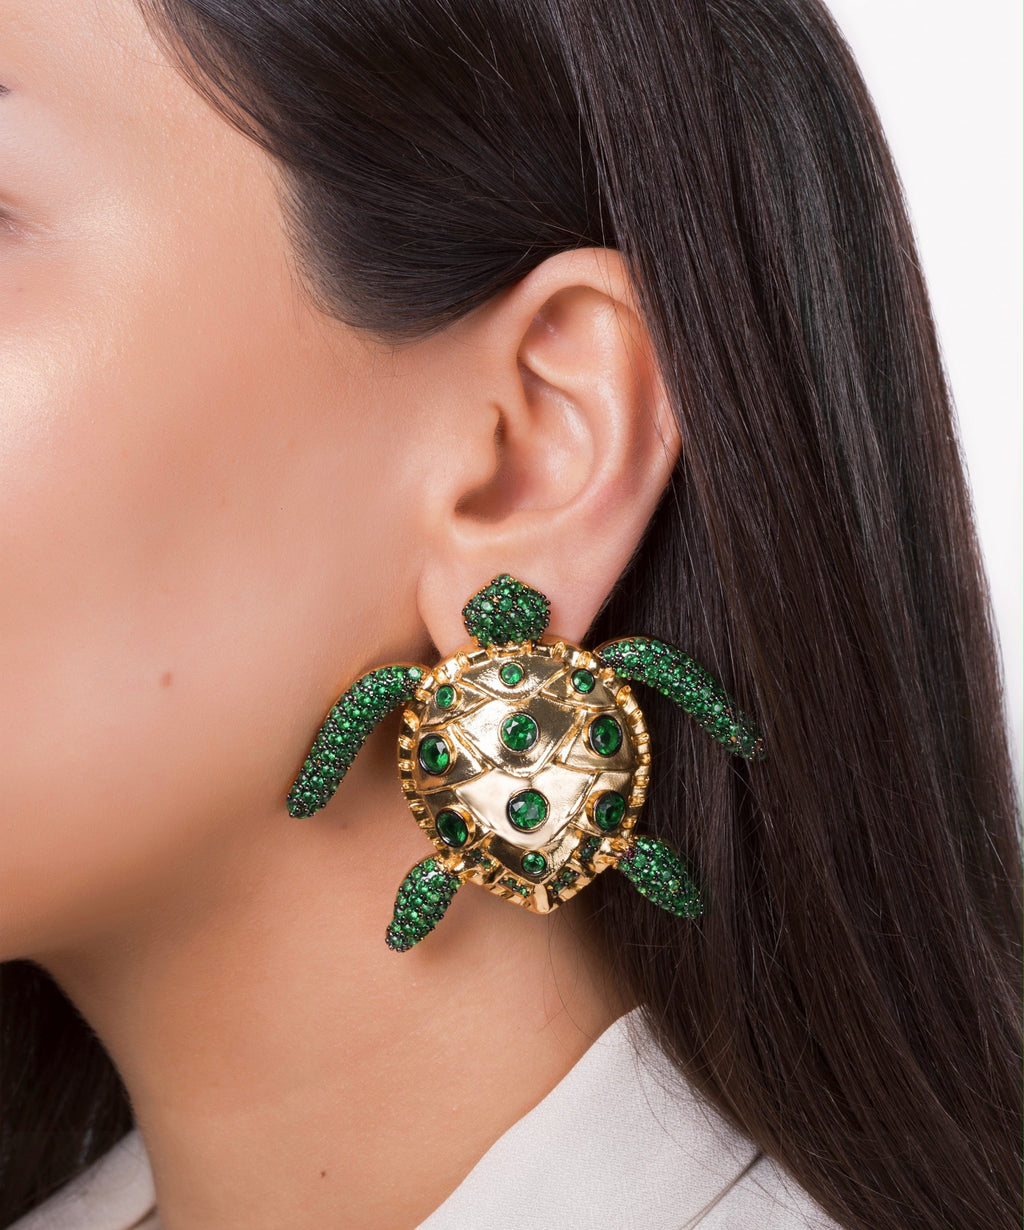 Sea Turtle Emerald Green Earrings